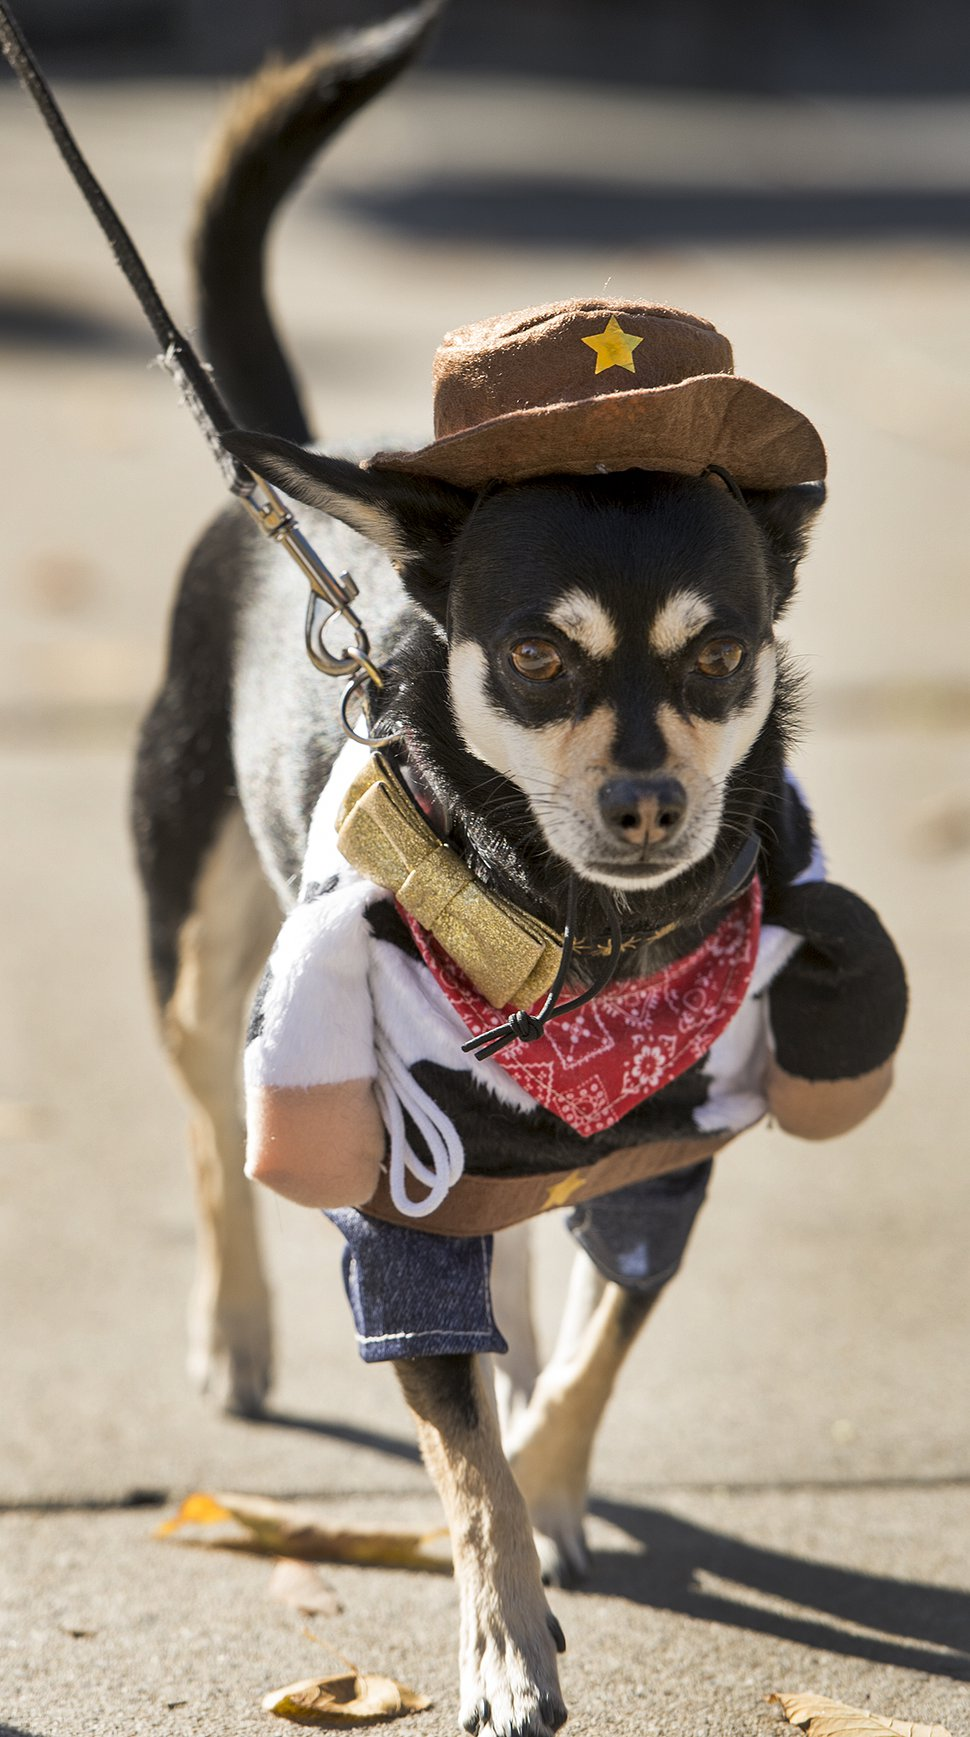 (Leah Hogsten | The Salt Lake Tribune) Lenny, the Chihuahua, walks the catwalk during the Howl-o-ween Pet Costume Contest in 2017